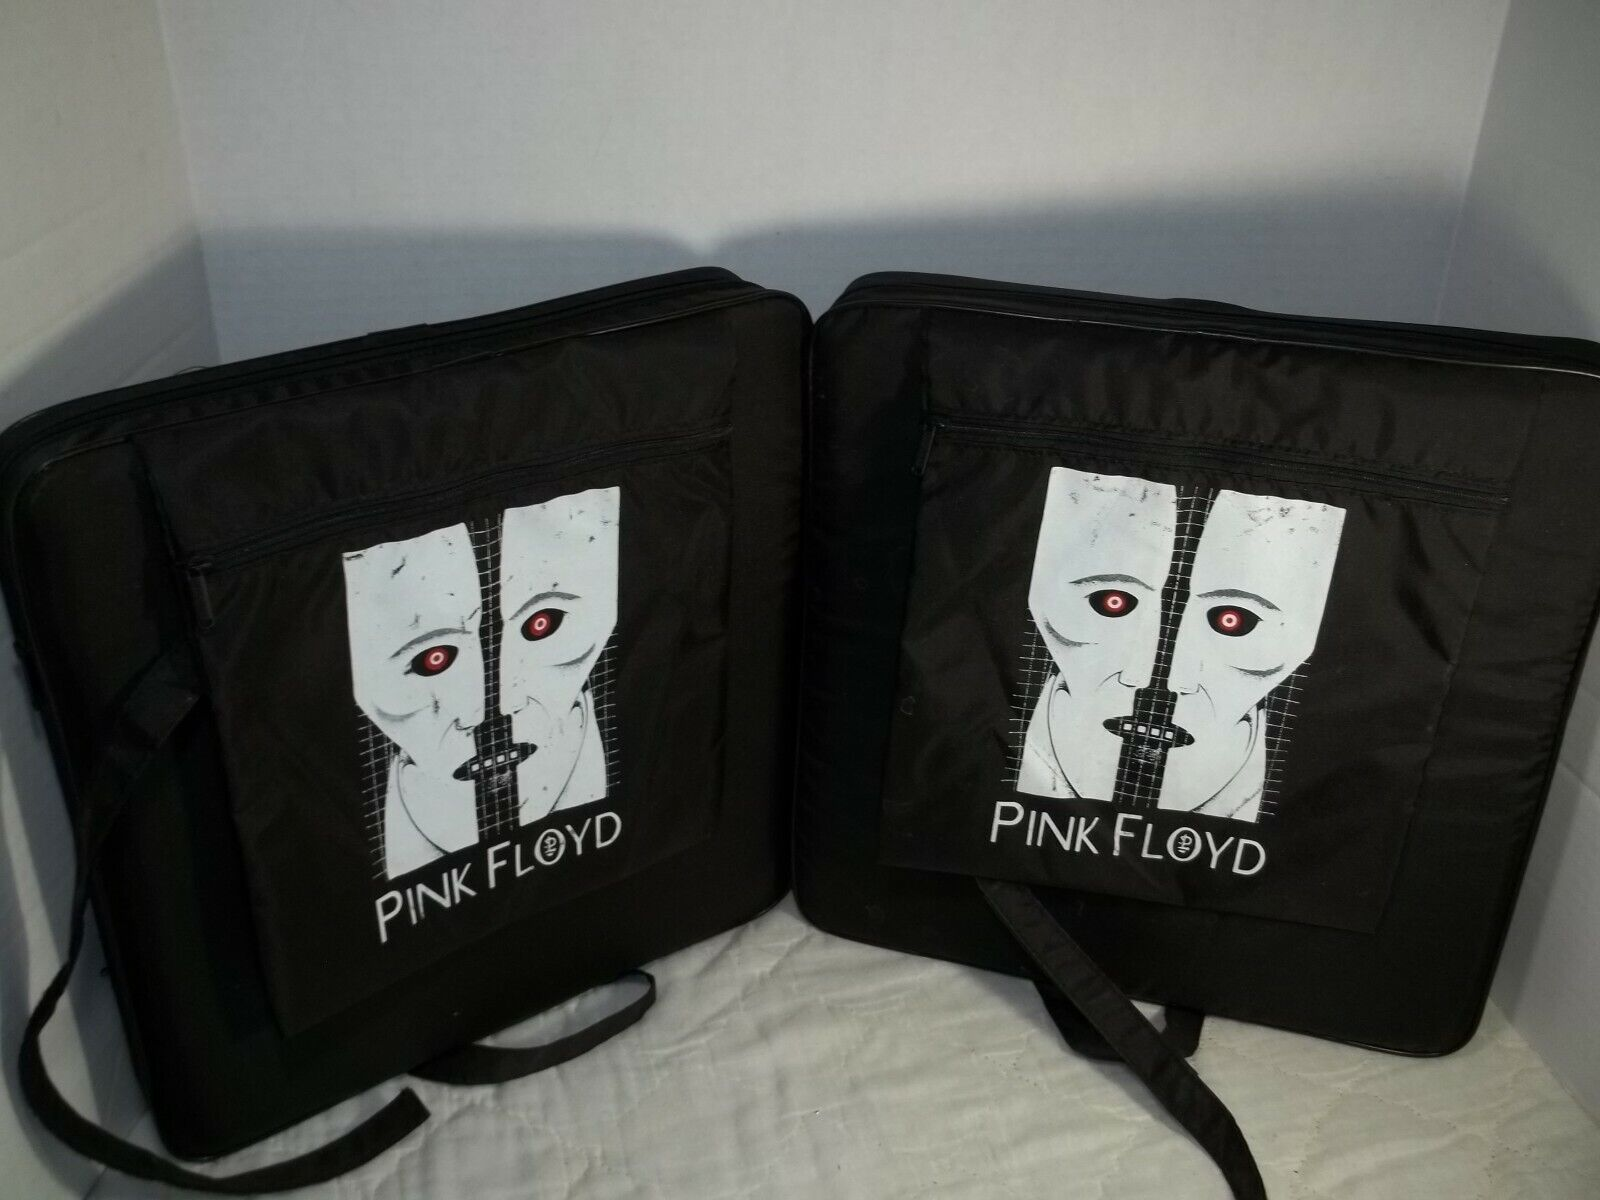 Vintage Pink Floyd Seat Cushions From Division Bell Tour - $26.00